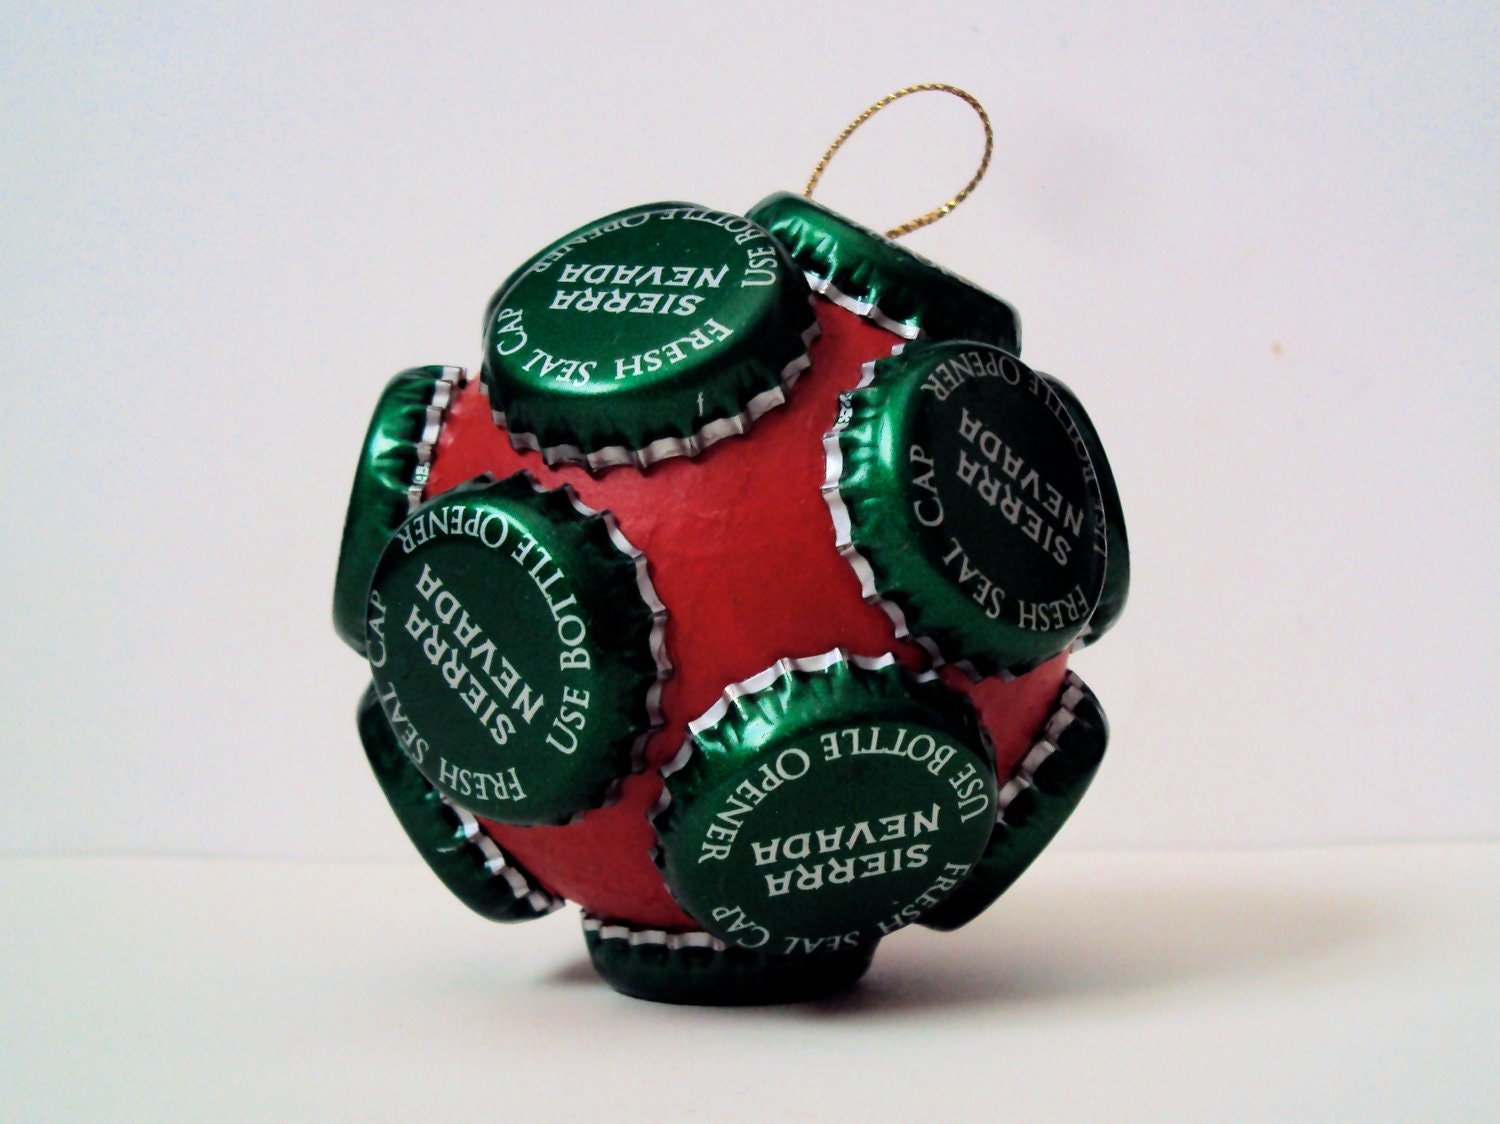 Recycled bottle cap christmas ornament quirky holiday decor for Quirky ornaments